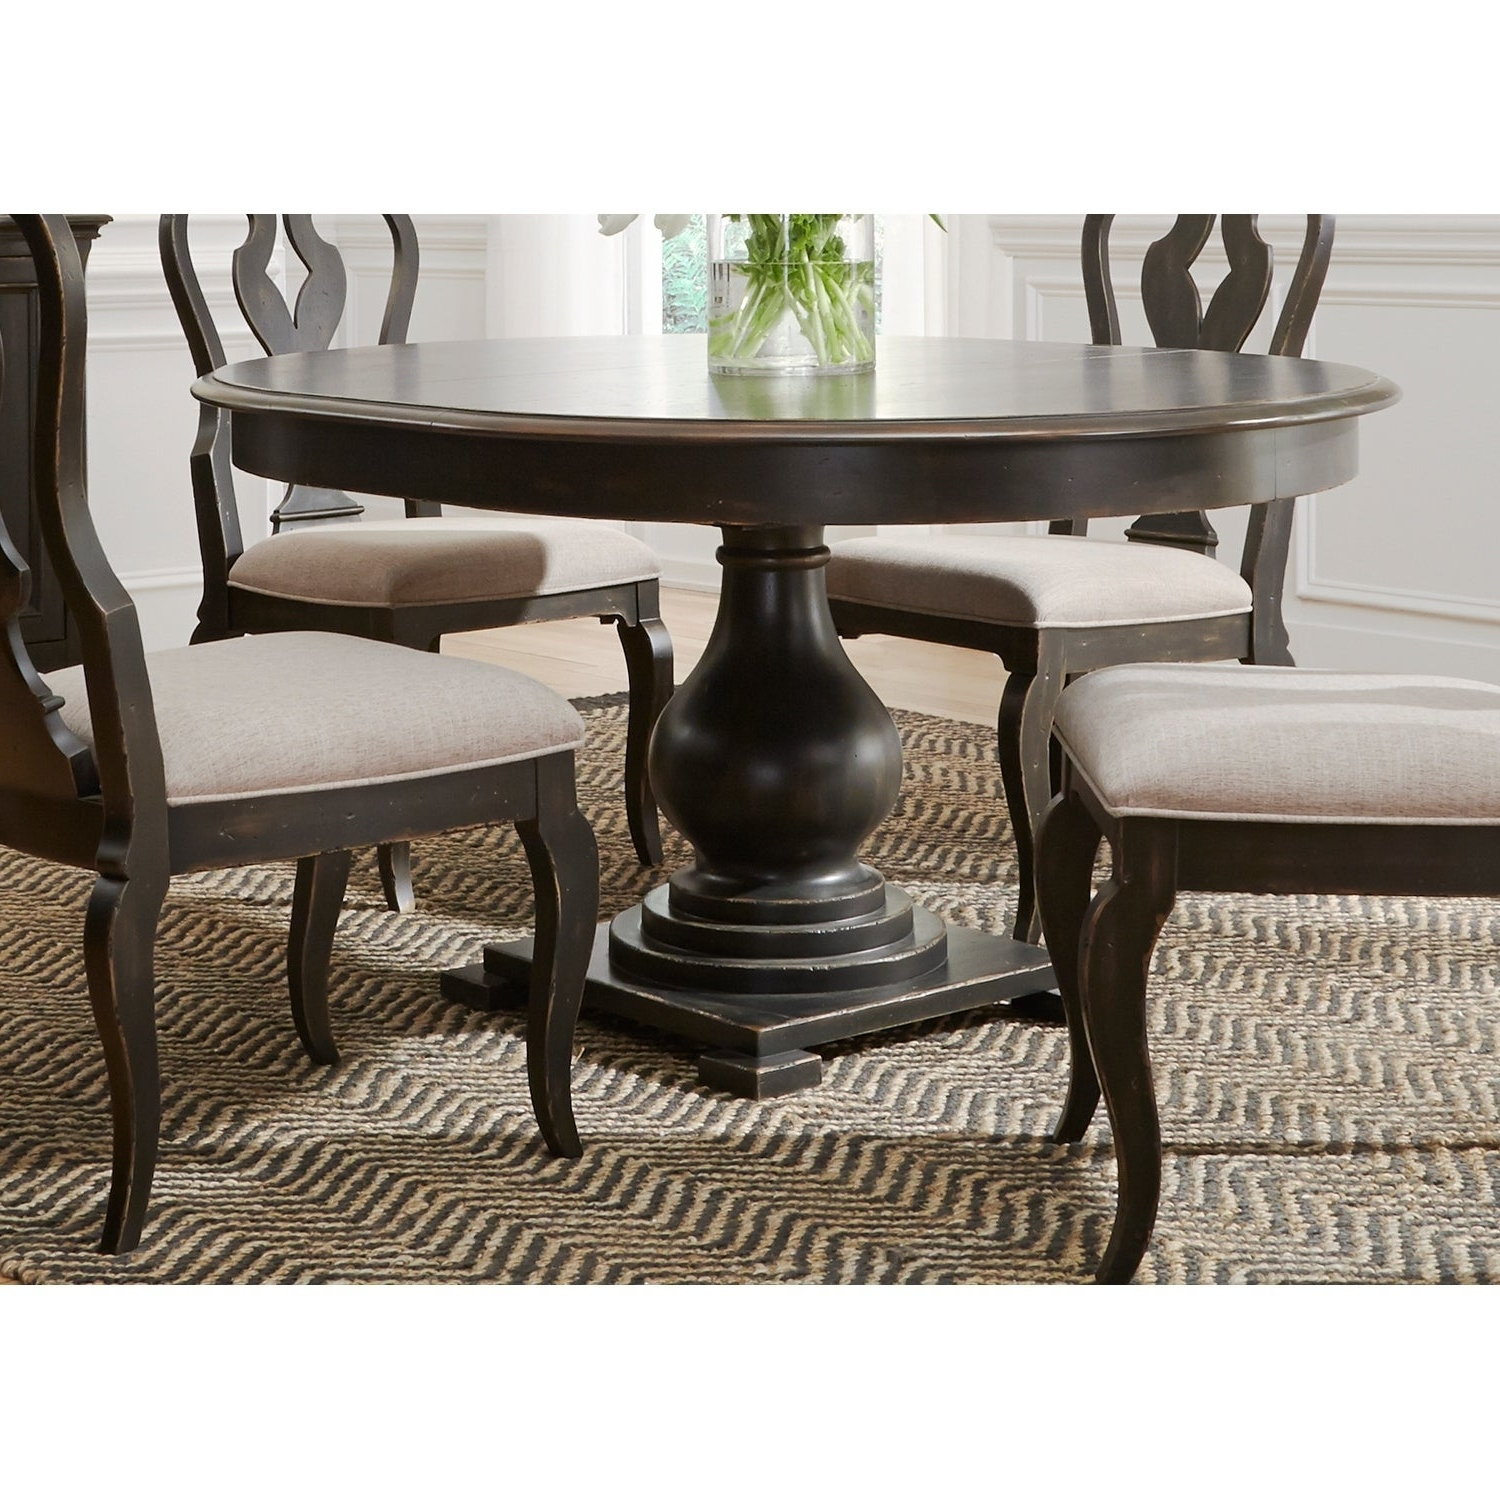 Well Liked Debby Small Space 3 Piece Dining Sets With Chesapeake Wire Brushed Antique Black 48X60 Pedestal Dinette Table (View 16 of 25)